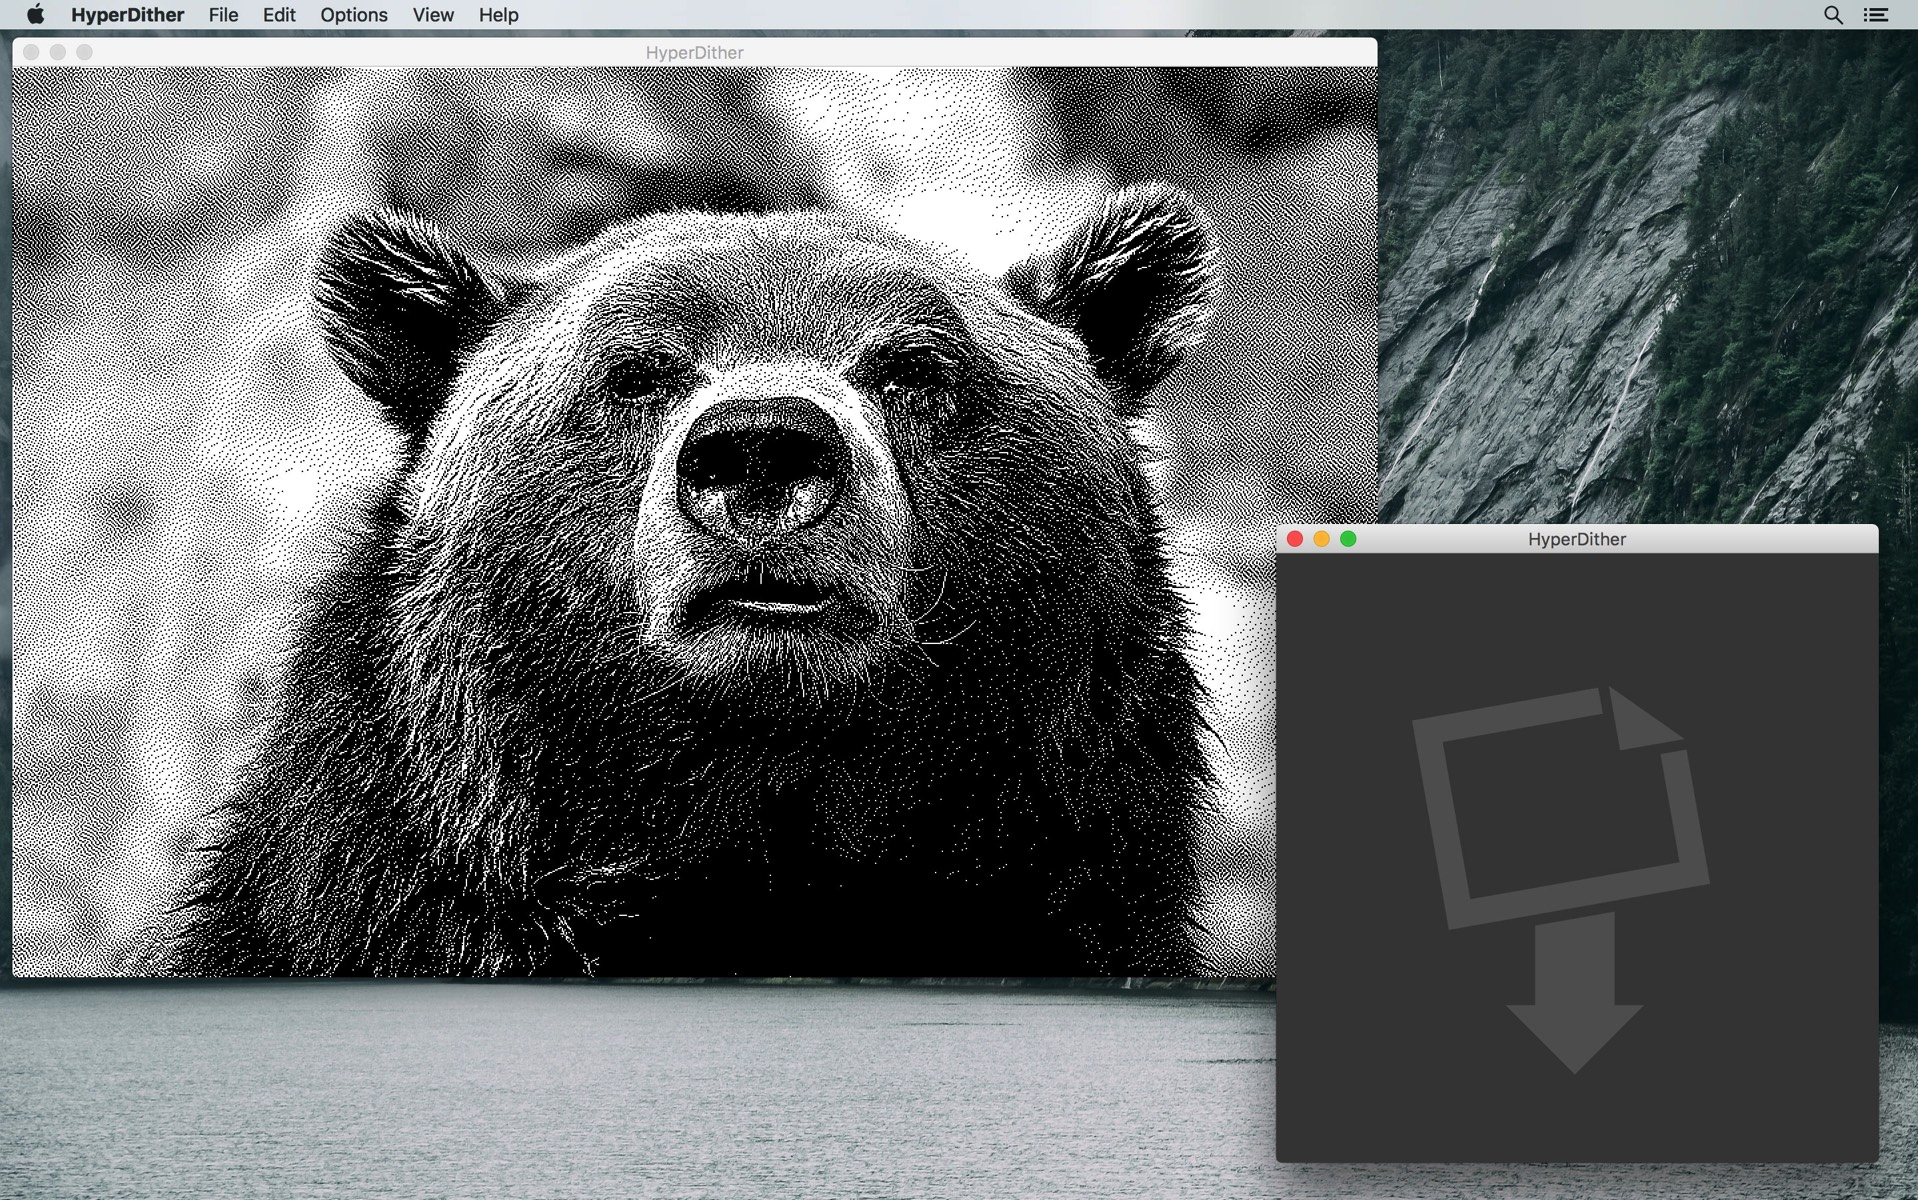 How to Make Your Photos Look Like 1-Bit B&W Images from the Original Macintosh